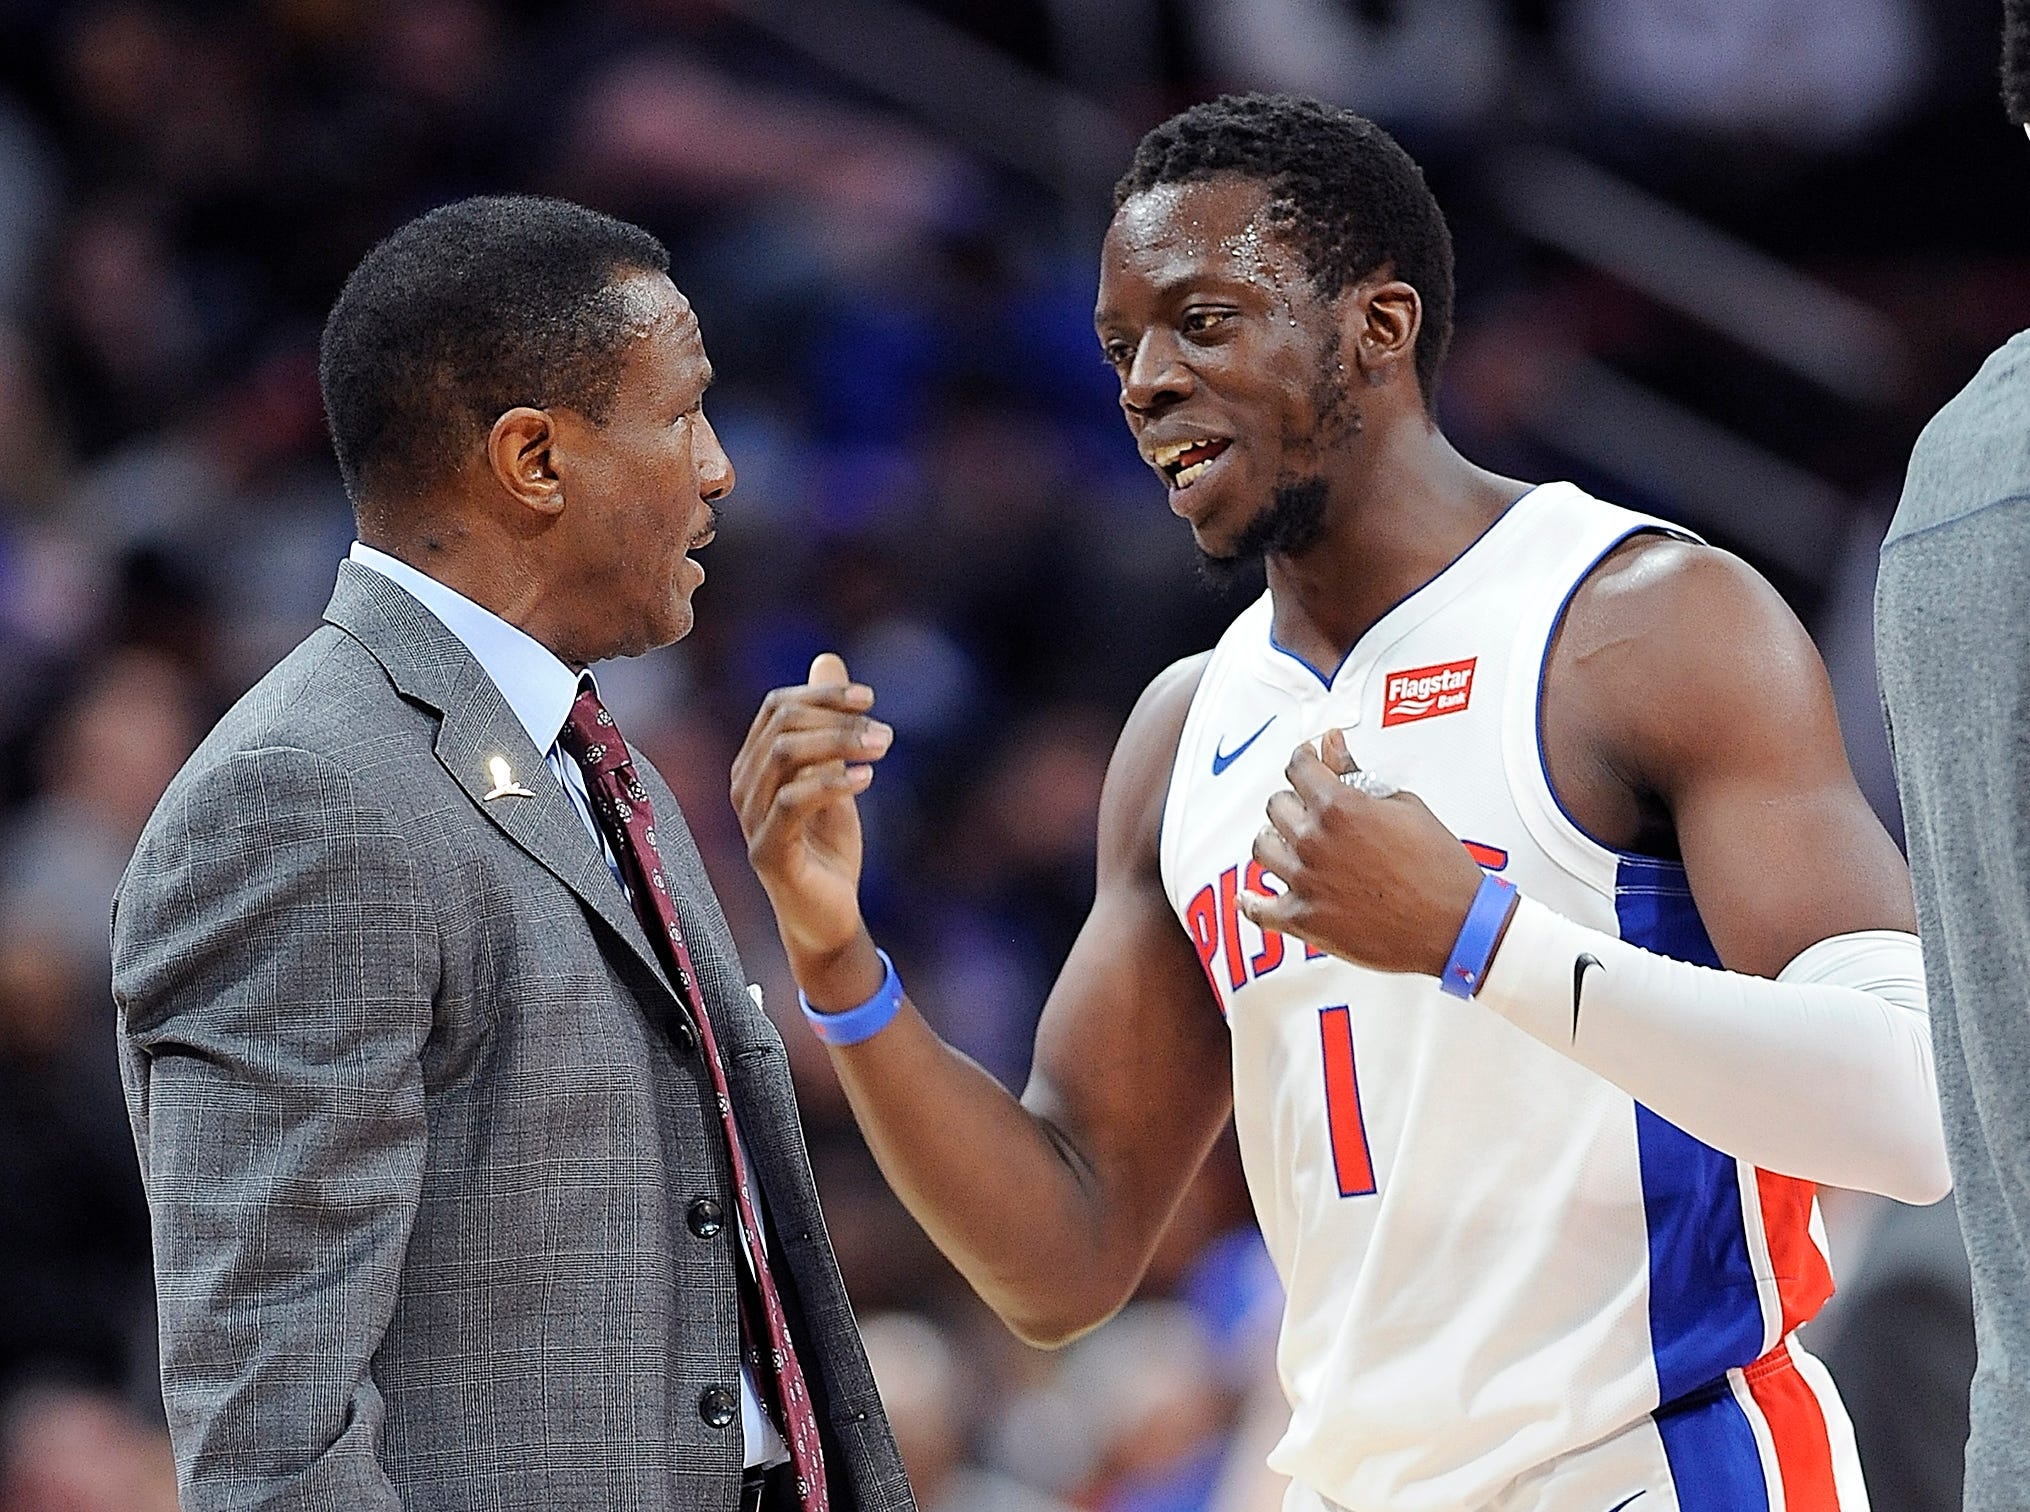 Pistons' Reggie Jackson talks to head coach Dwane Casey during a timeout in the second quarter.